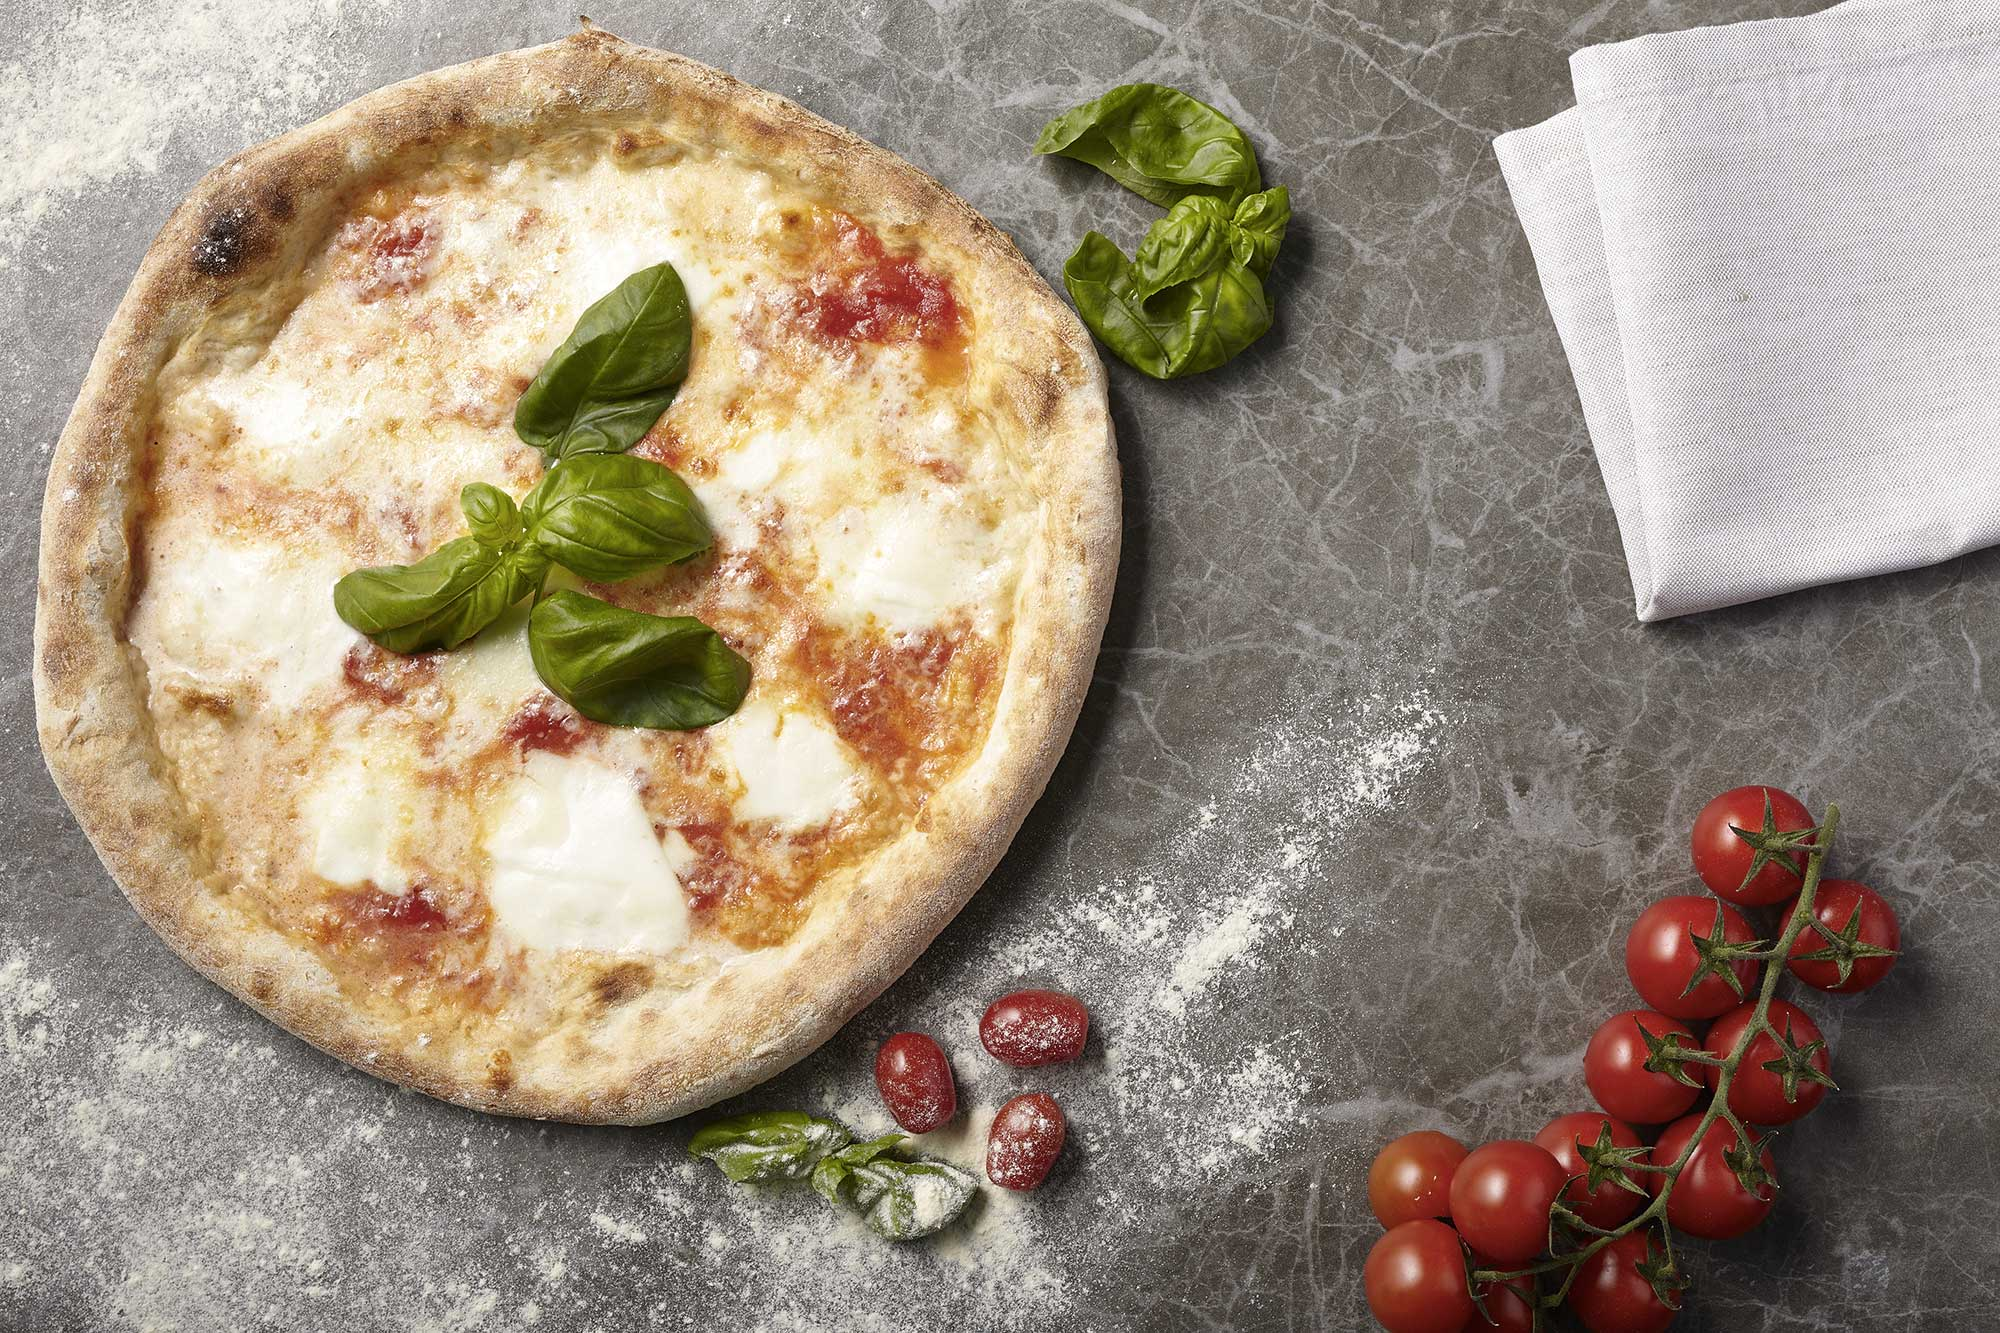 La pizza & I suoi ingredienti